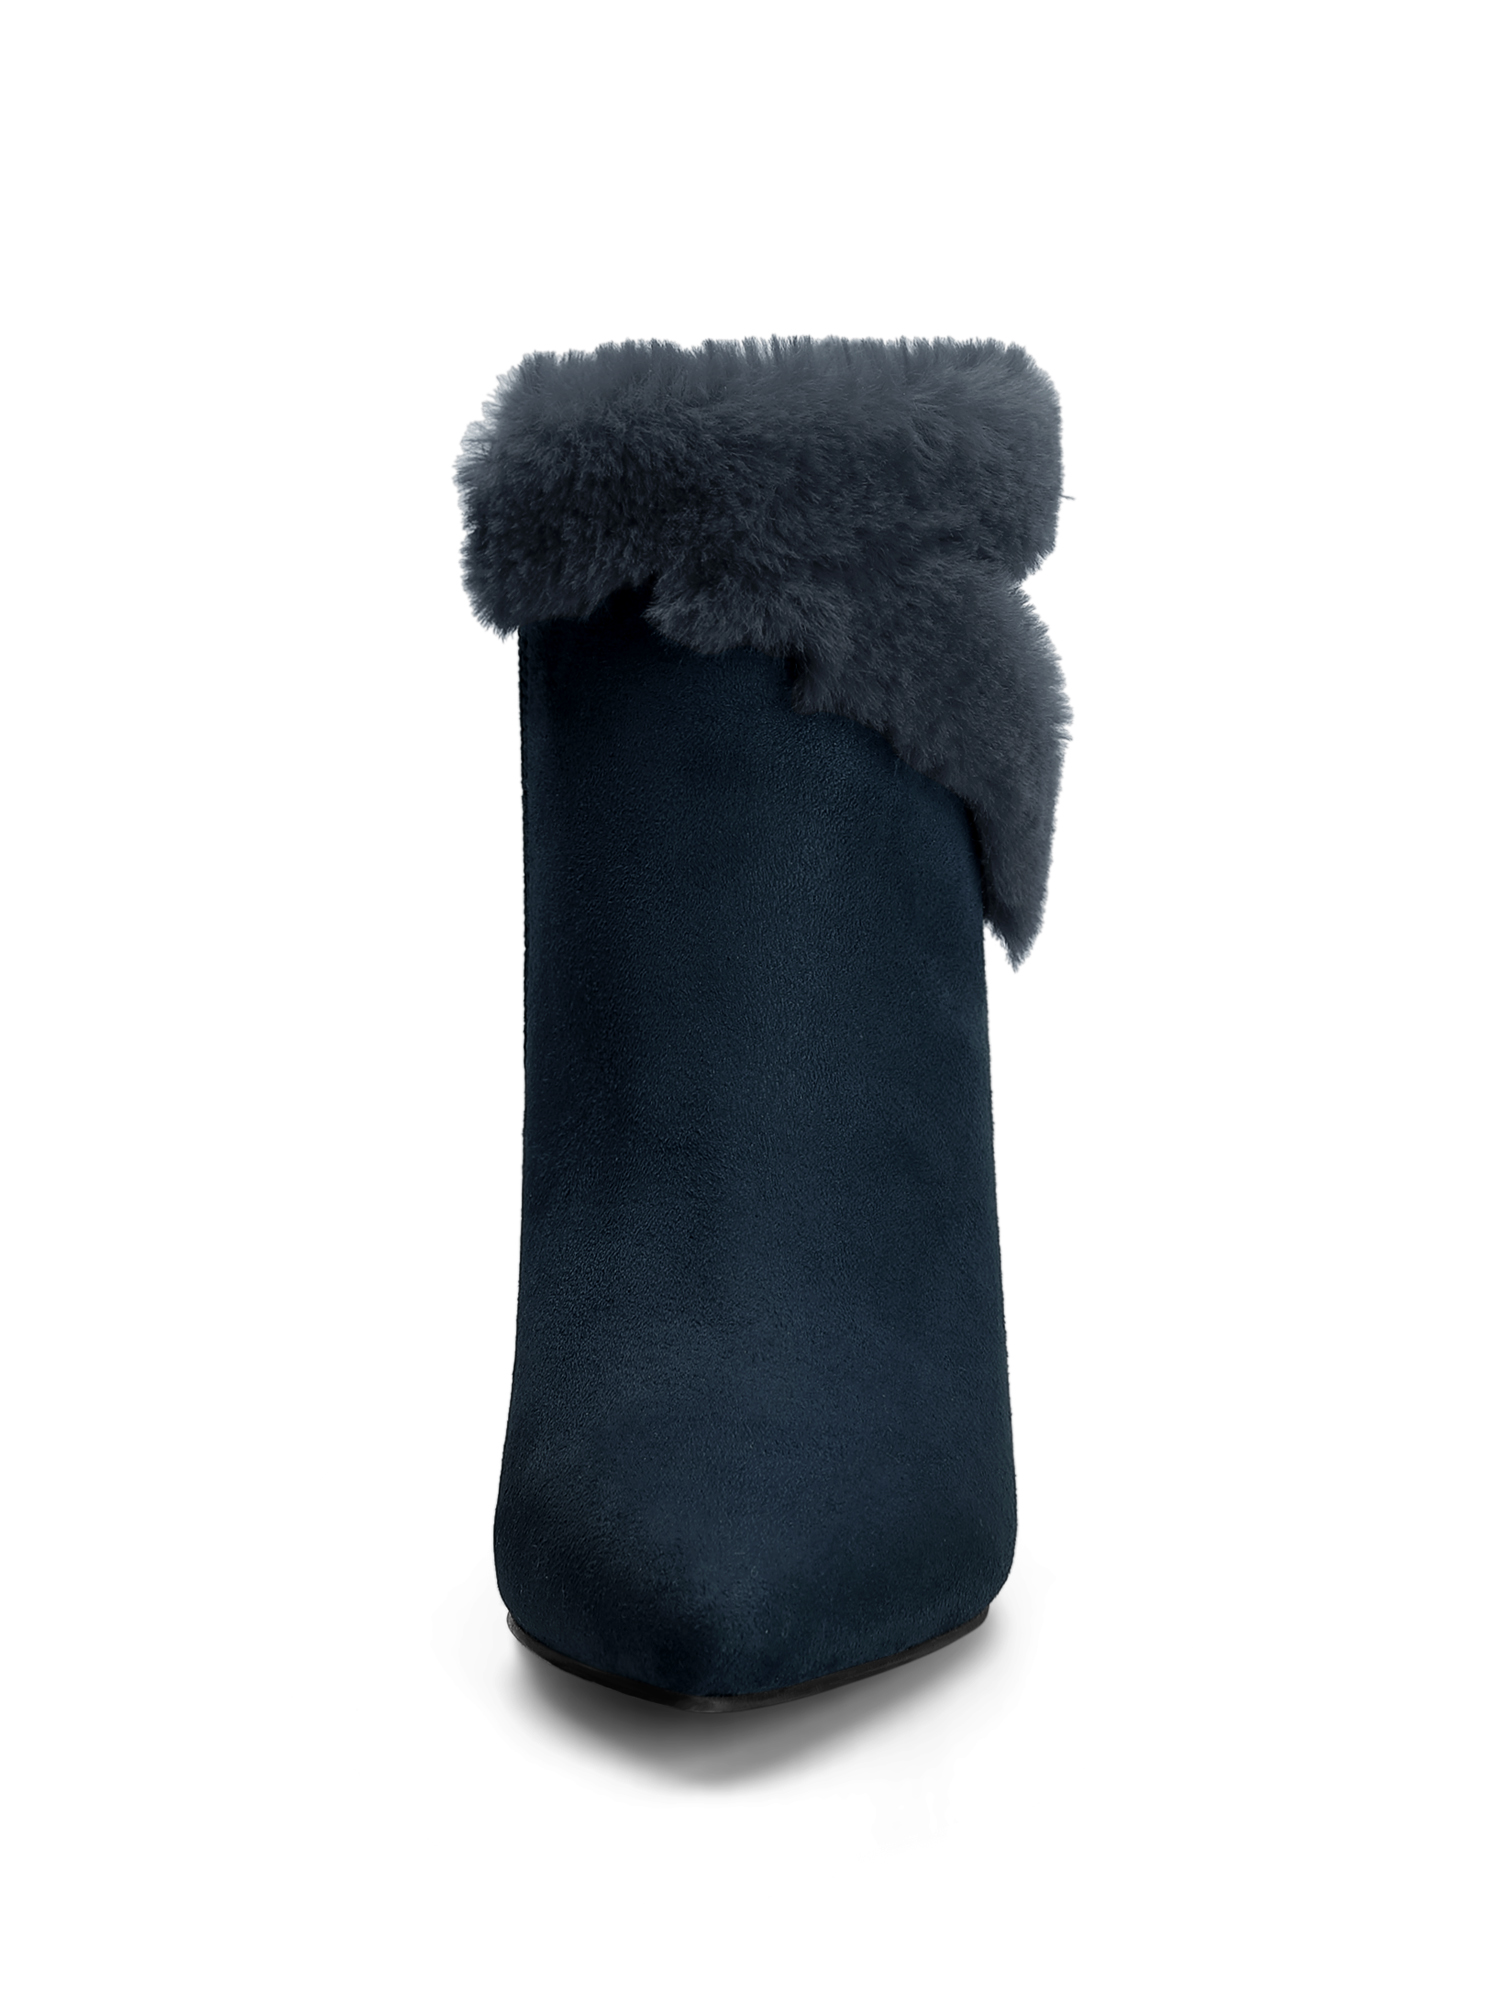 Women's Faux Fur Pointy Toe Chunky Heel Ankle Boots Navy Blue (Size 5.5)